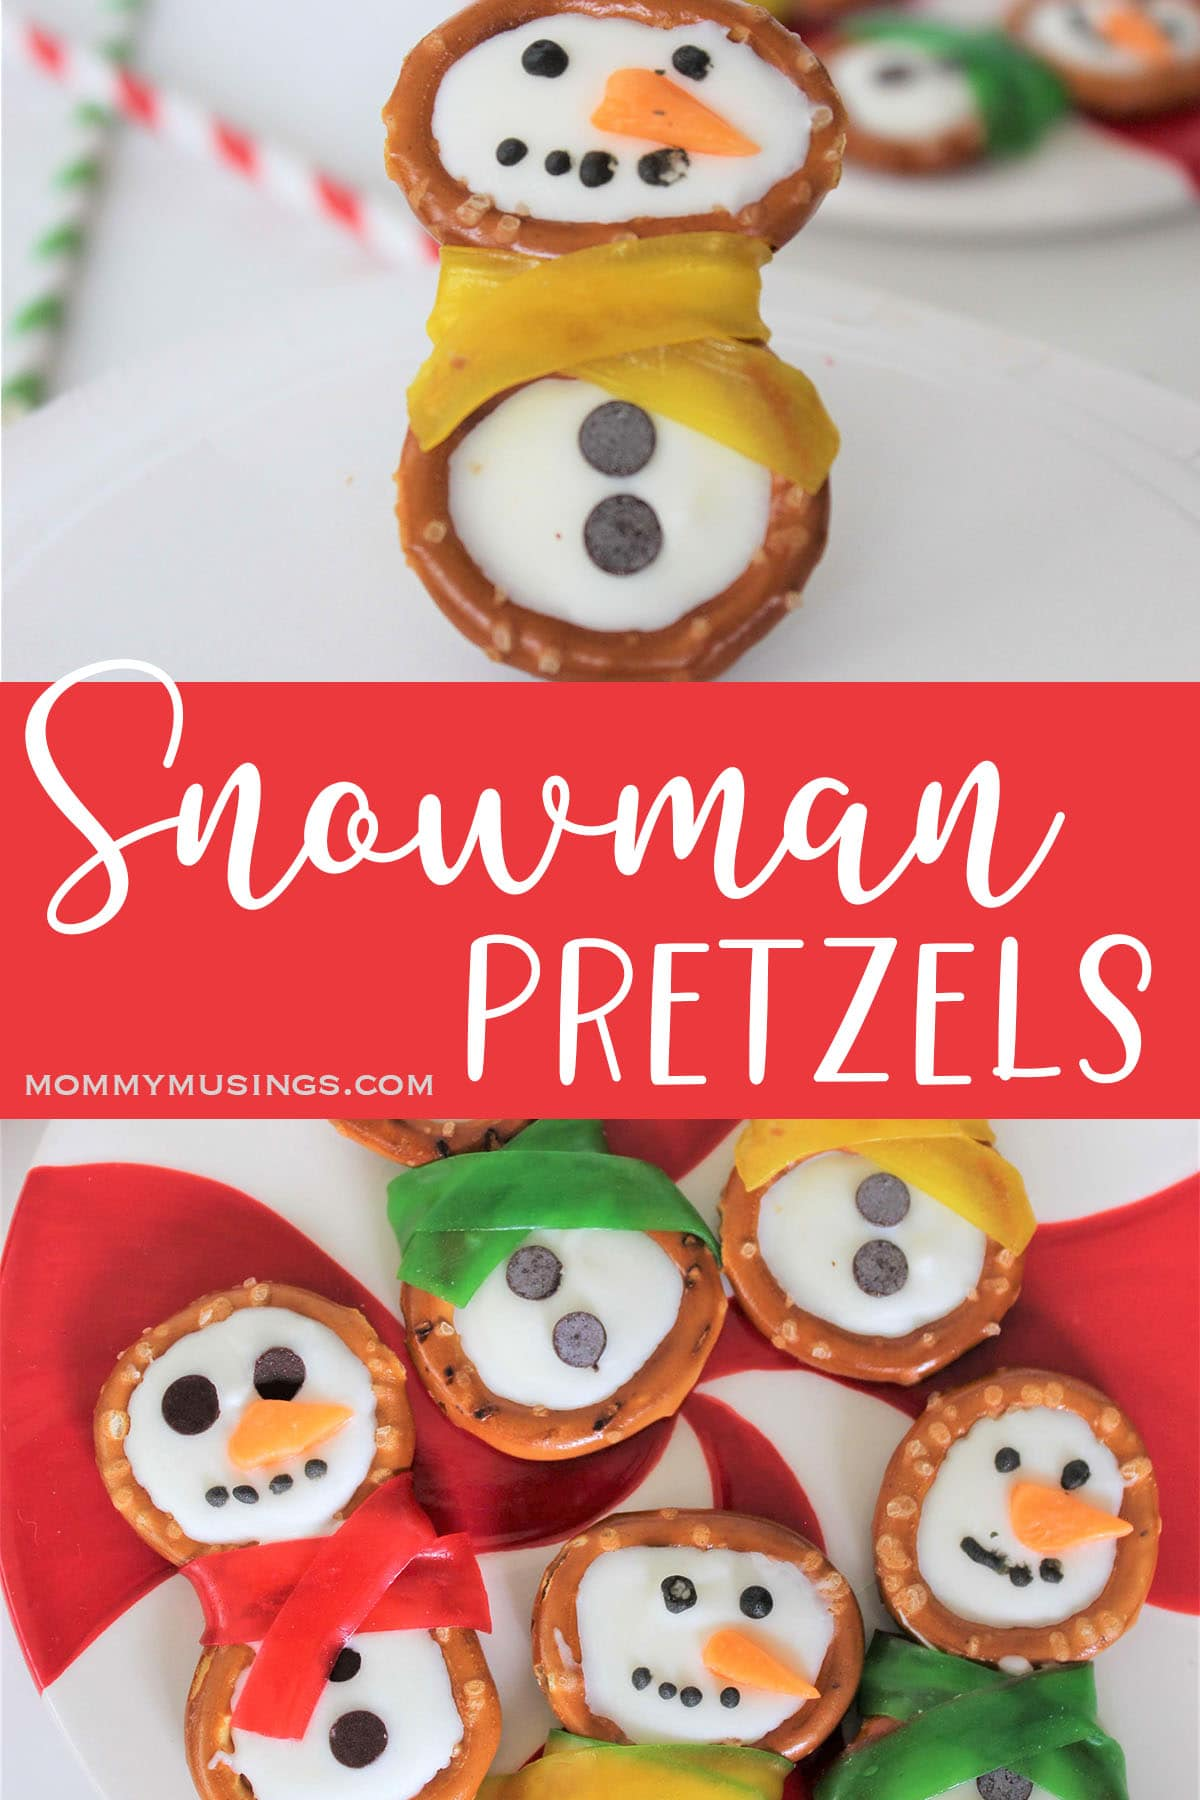 easy snowman pretzels christmas snack with text which reads snowman pretzels